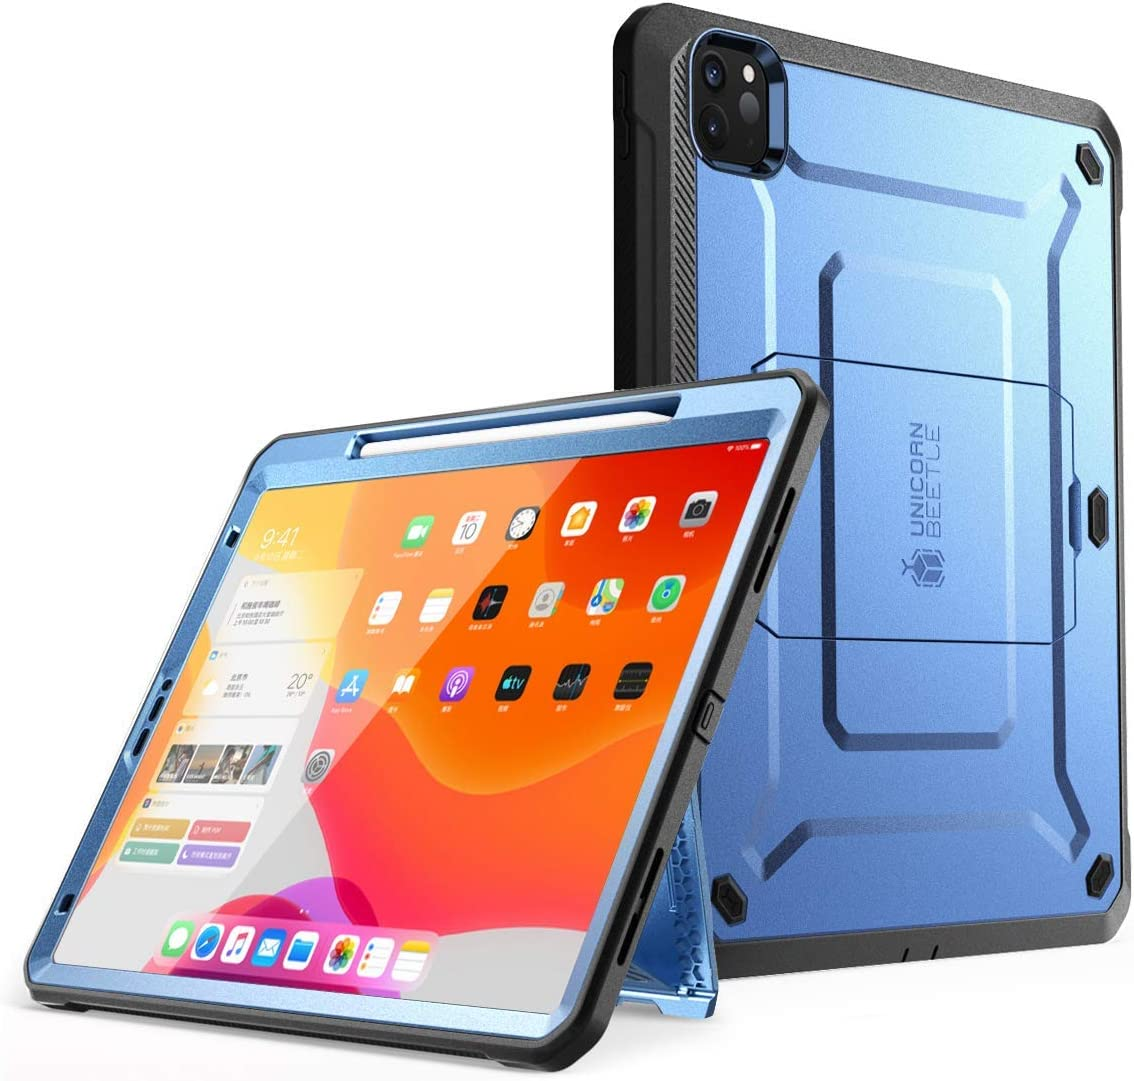 SUPCASE UB Pro Series Case for iPad Pro 12.9 inch 2020 Release, Support Apple Pencil Charging with Built-in Screen Protector Full-Body Rugged Kickstand Protective Case (Slate Blue)